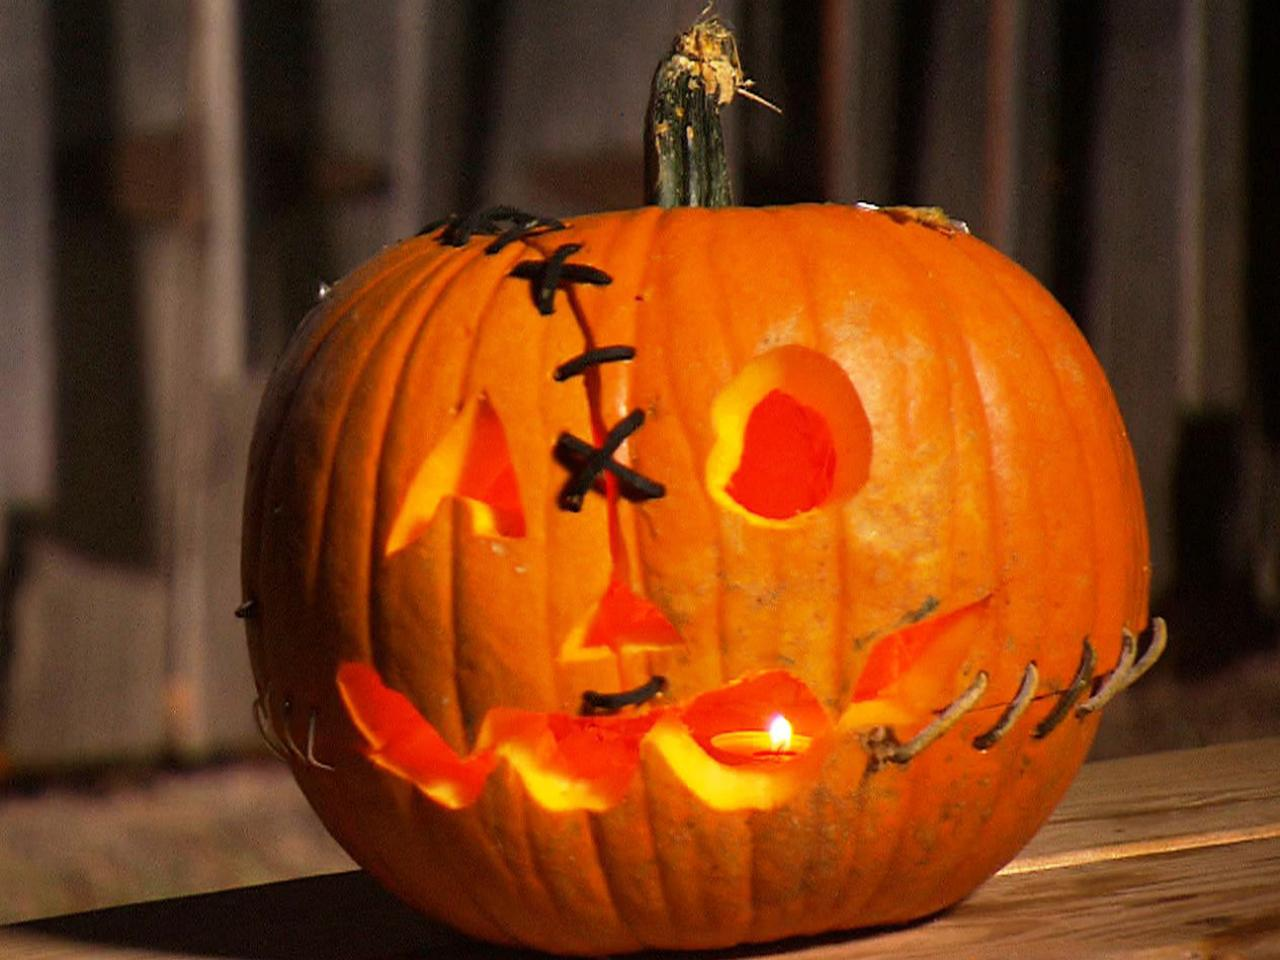 Halloween+Pumpkin+Carving+Ideas+with+Pictures